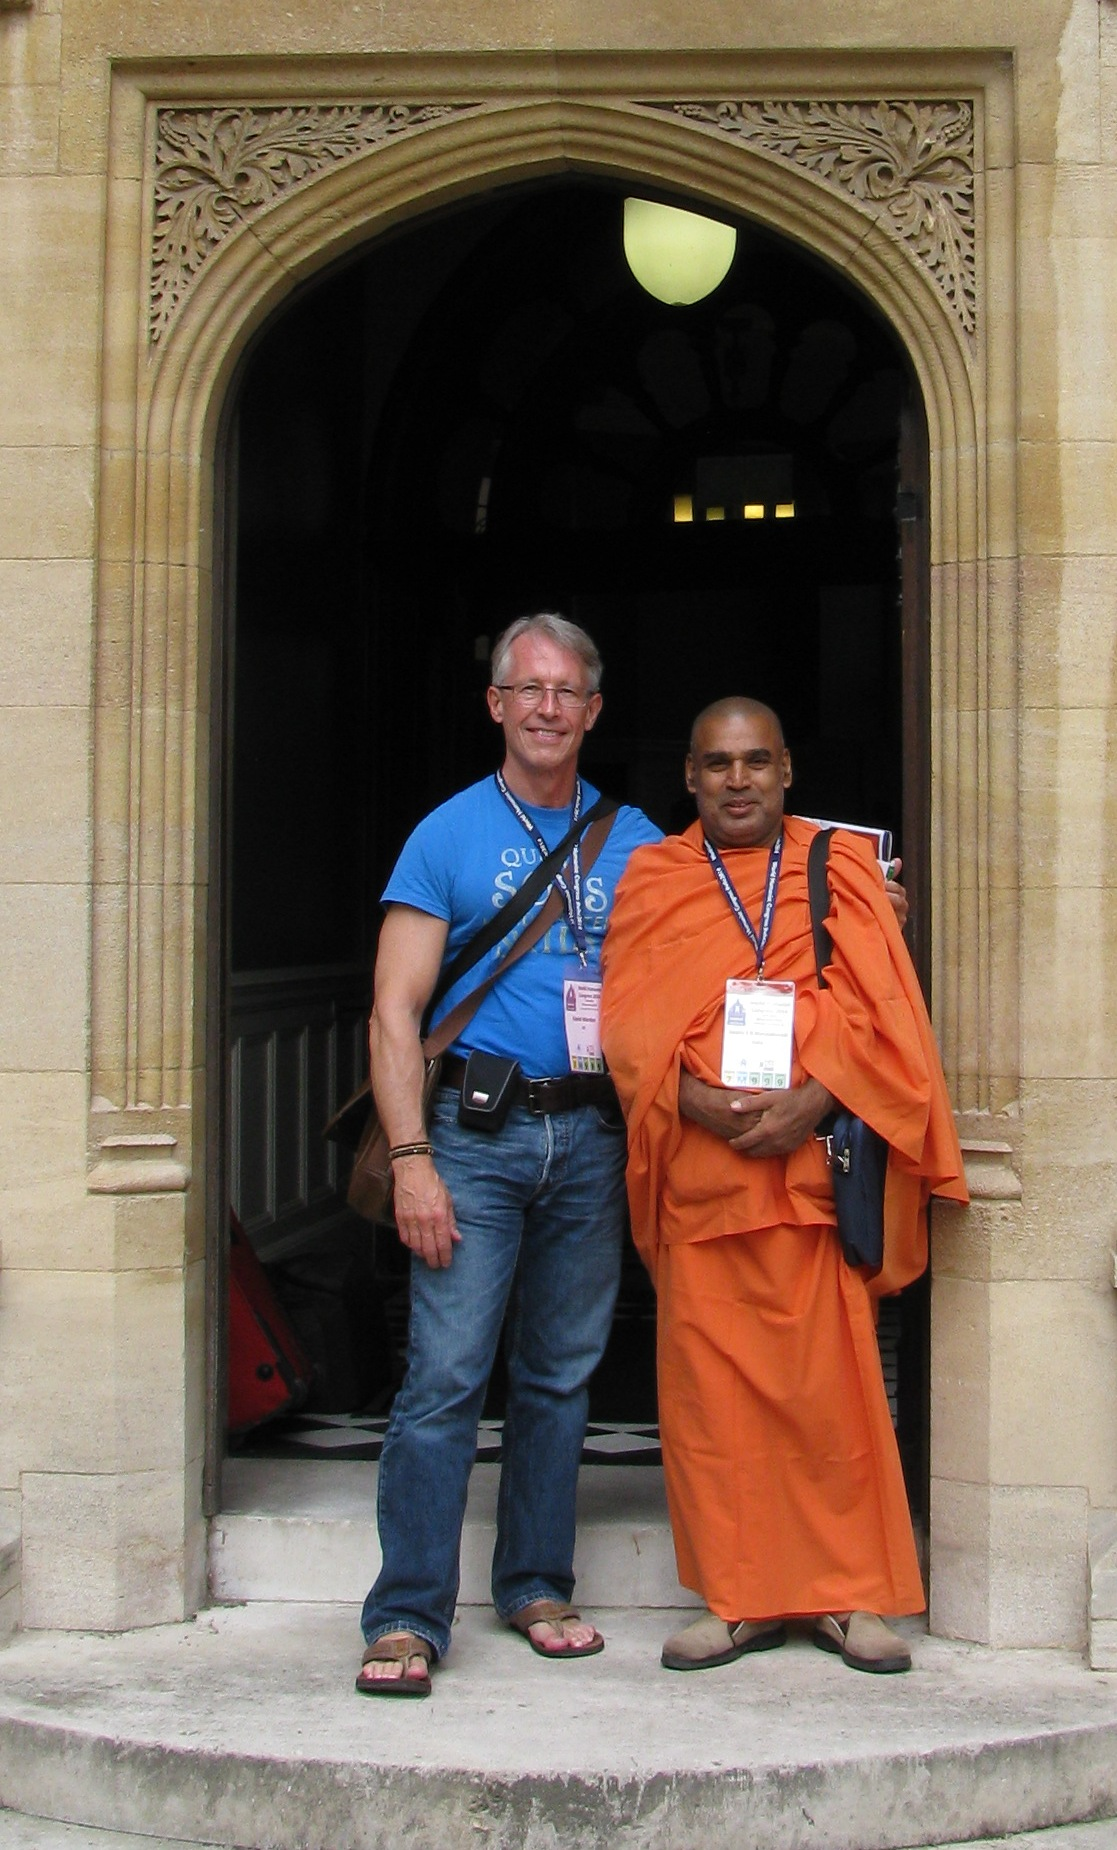 David Warden and Swami Manavatavadi at the World Humanist Congress in Oxford. Swamiji, who died in 2018, was the director of a humanist school and institute in northern India. He was also a leading member of the Federation of Indian Rationalist Associations.